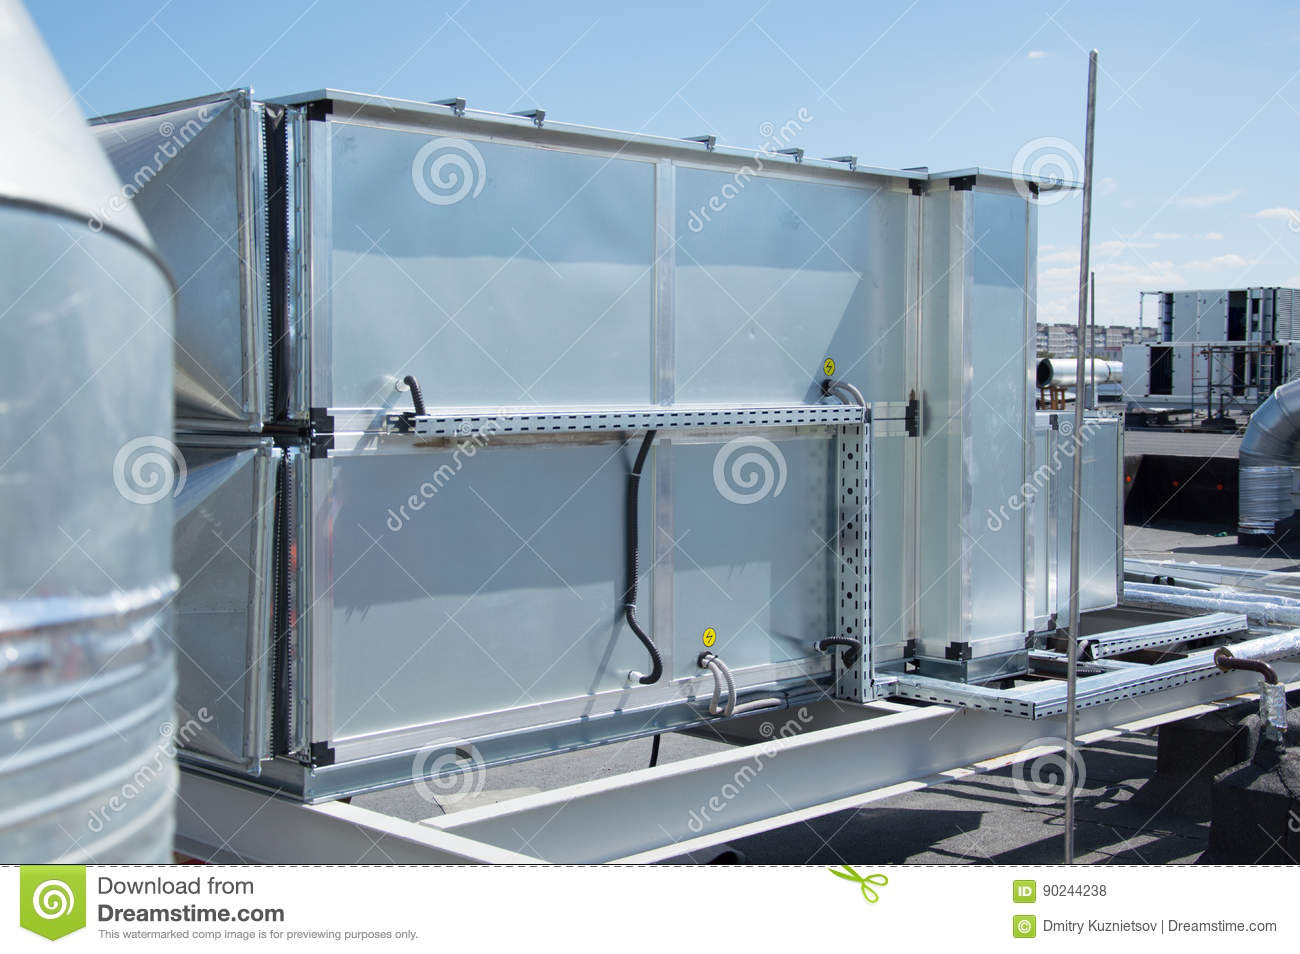 Central Ventilation System : Industrial ventilation unit for the central